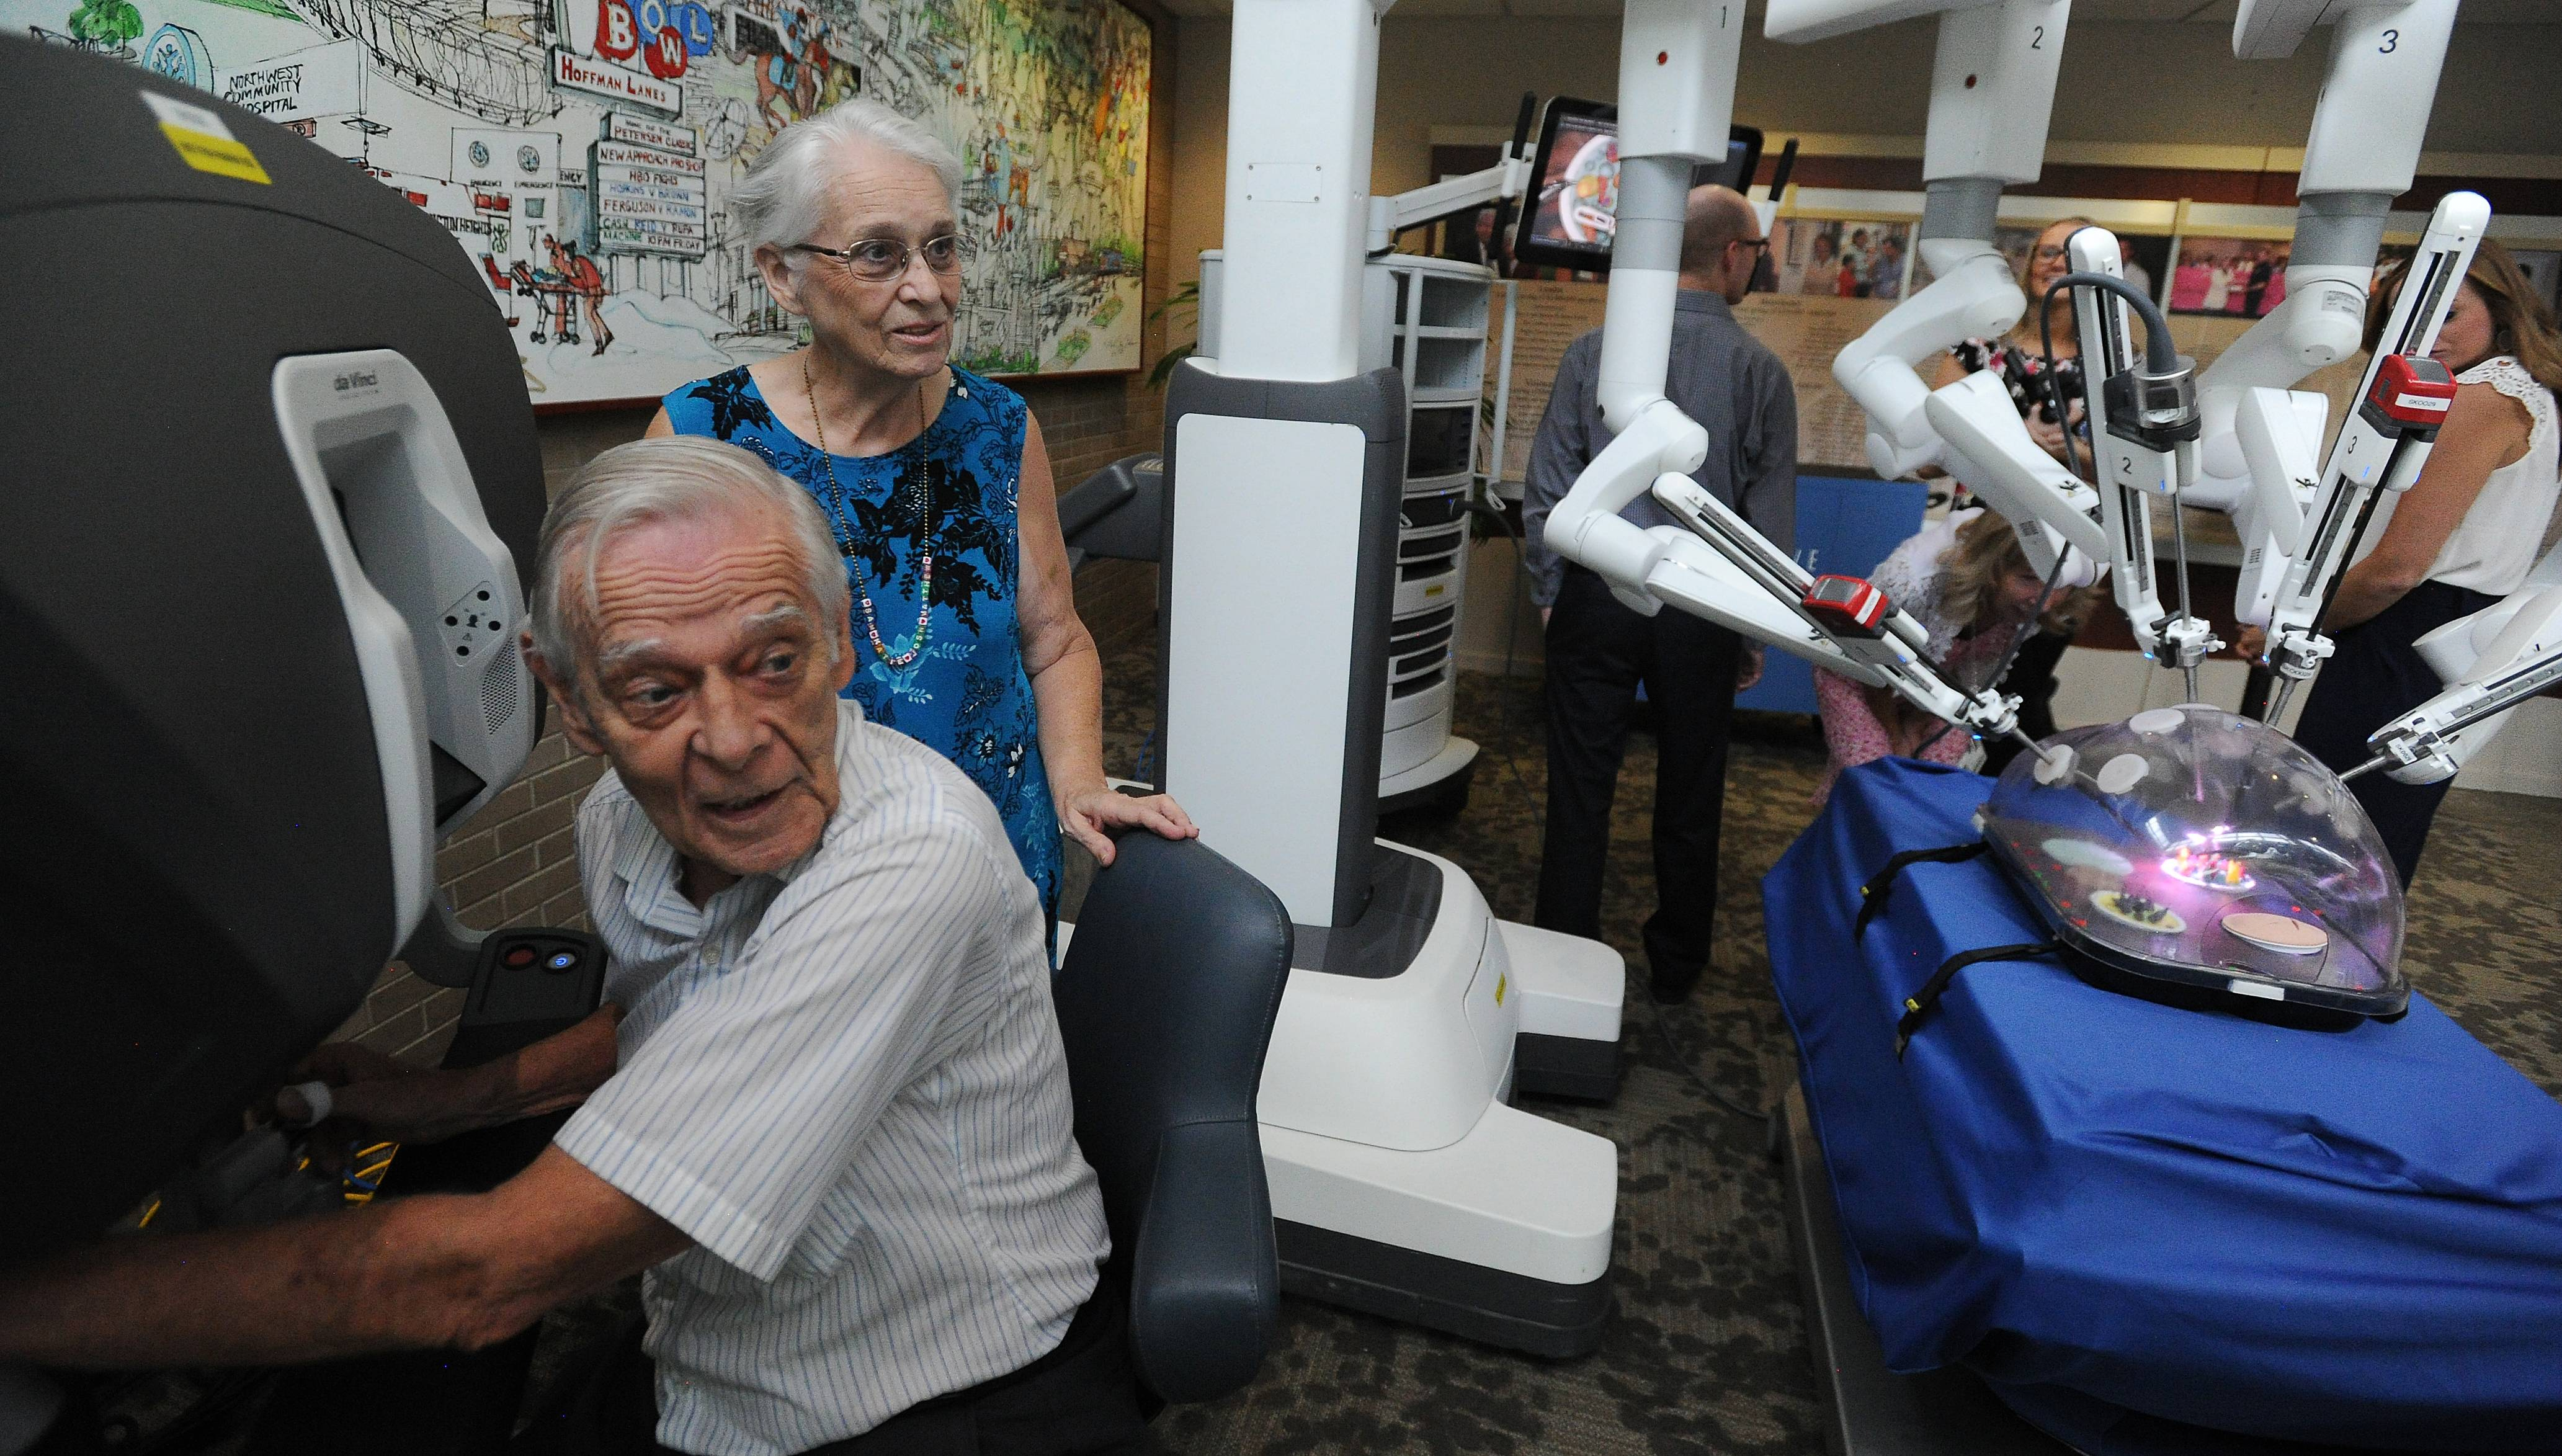 Kent Ulmer tests the da Vinci surgical machine Wednesday at Northwest Community Hospital, where his wife, Martha, became the 5,000th patient to have surgery done with the robot.